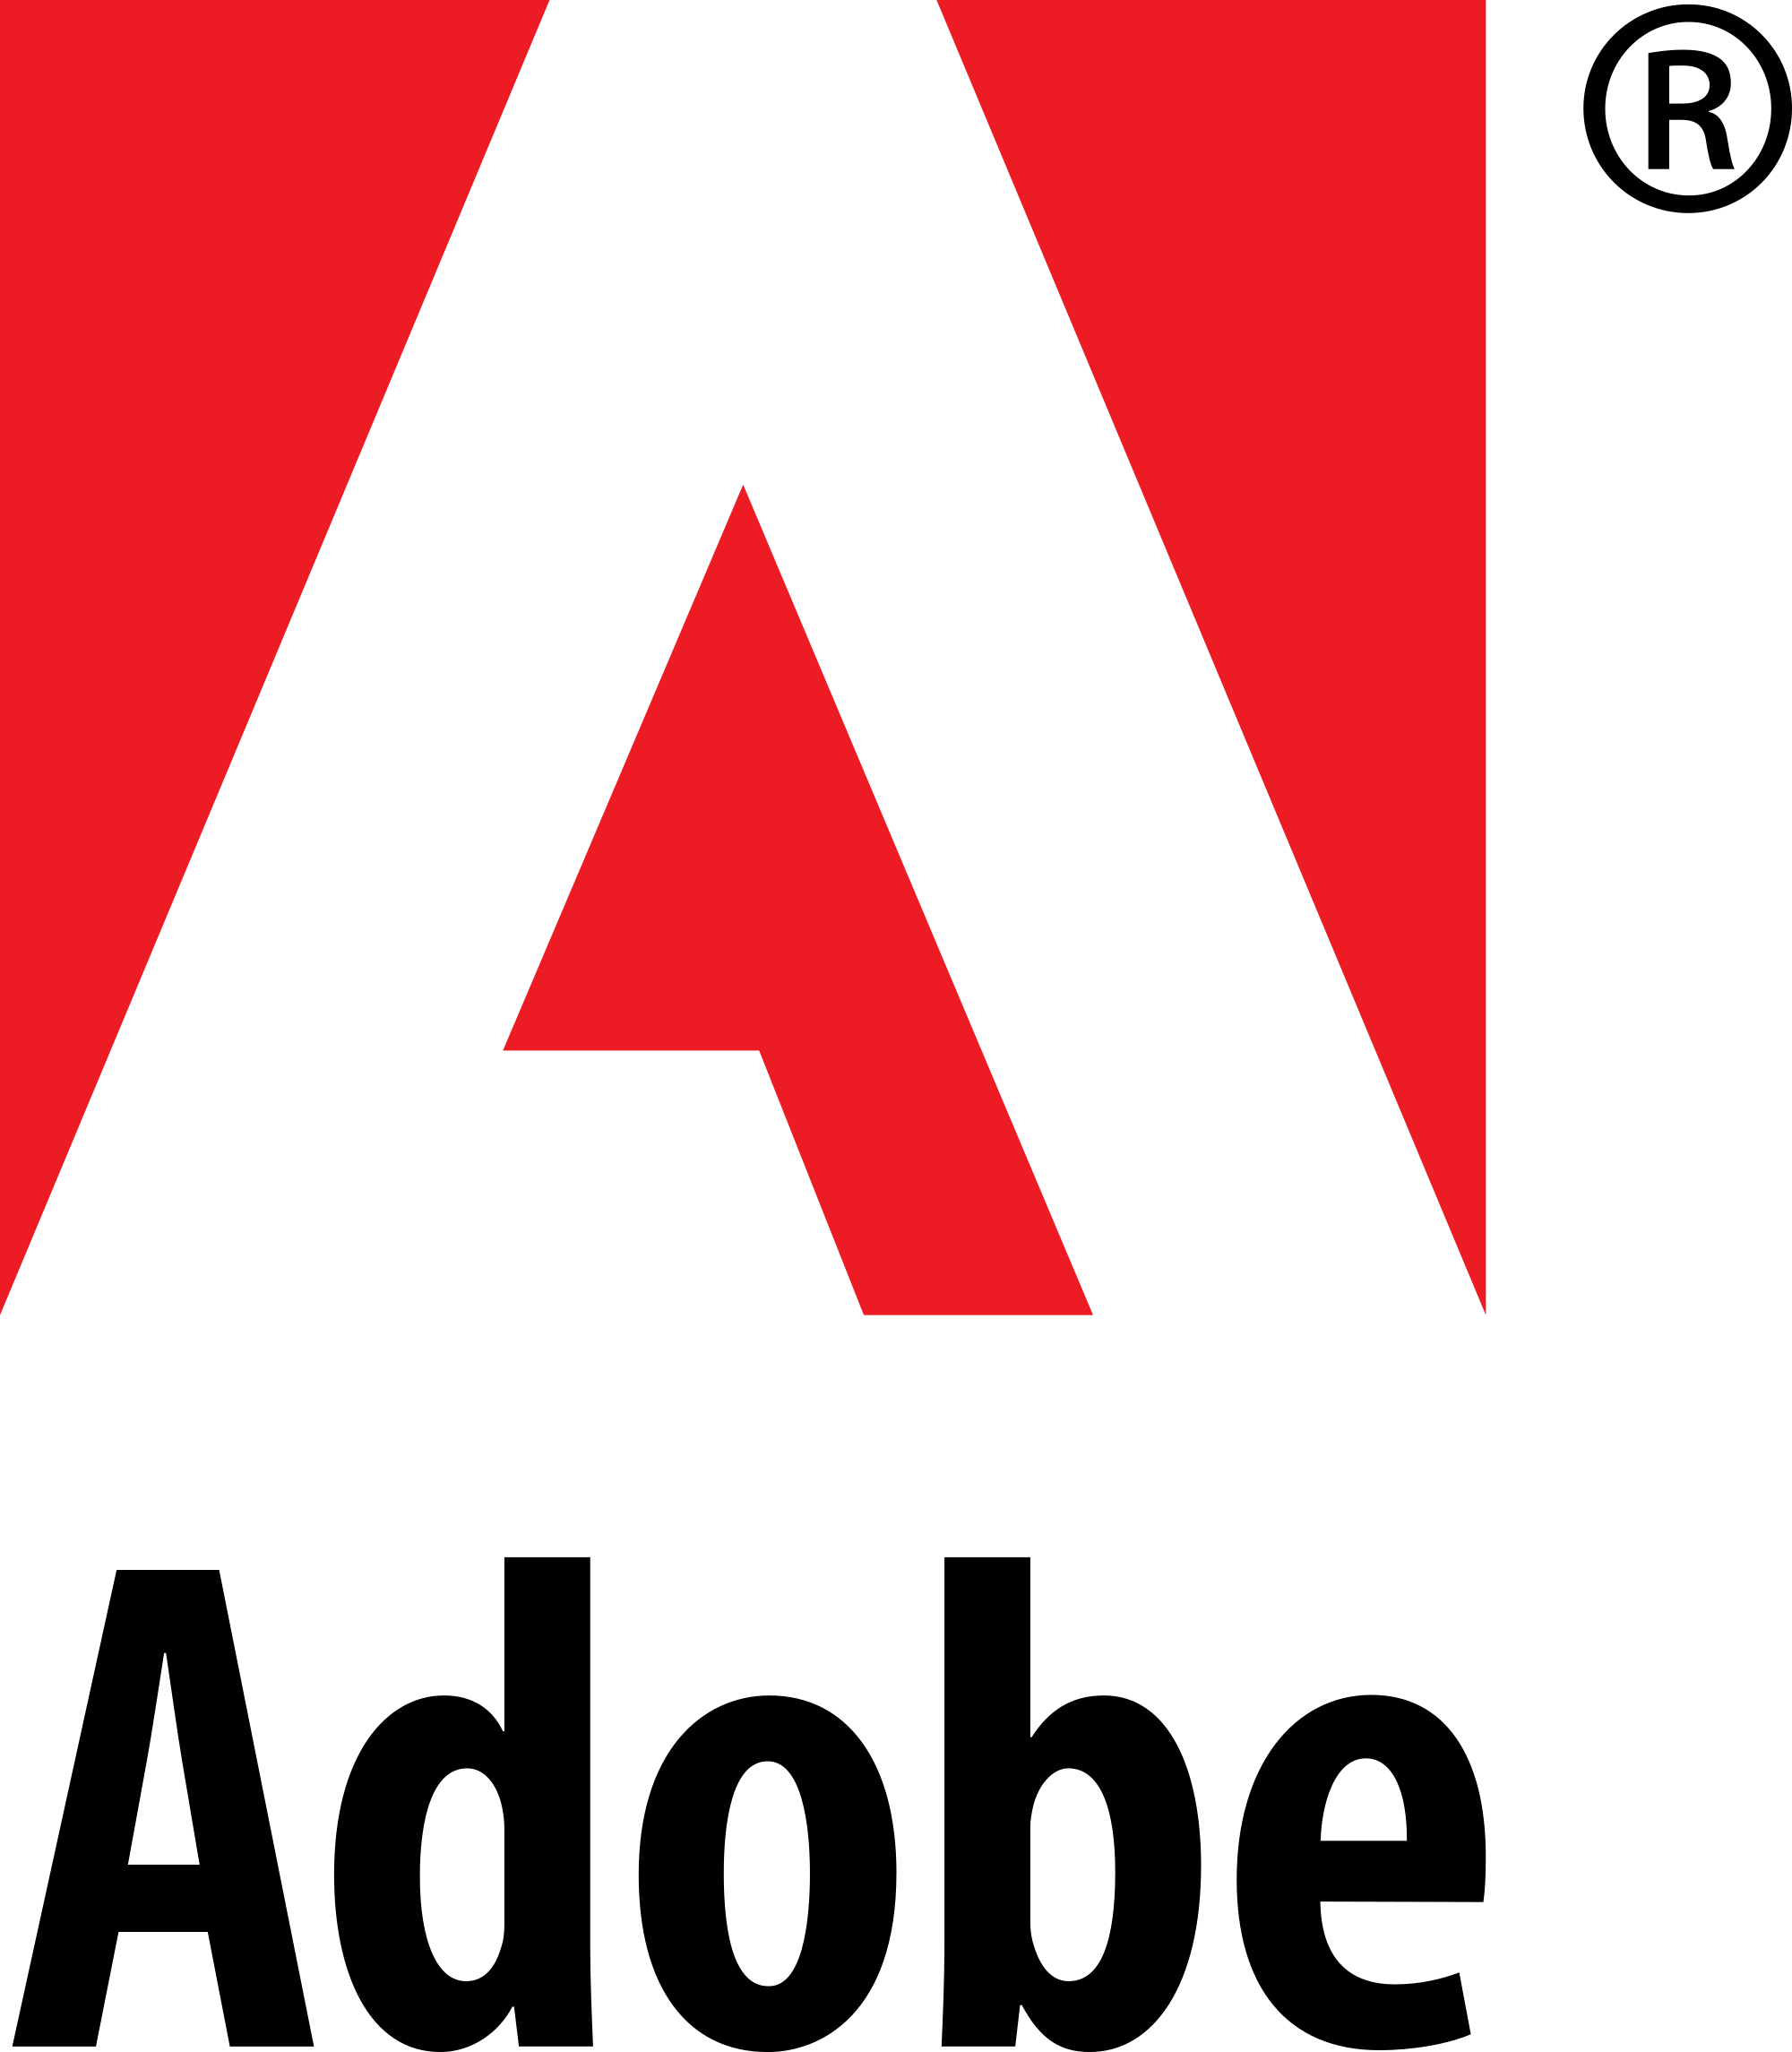 Adobe logo png. File systems and wordmark